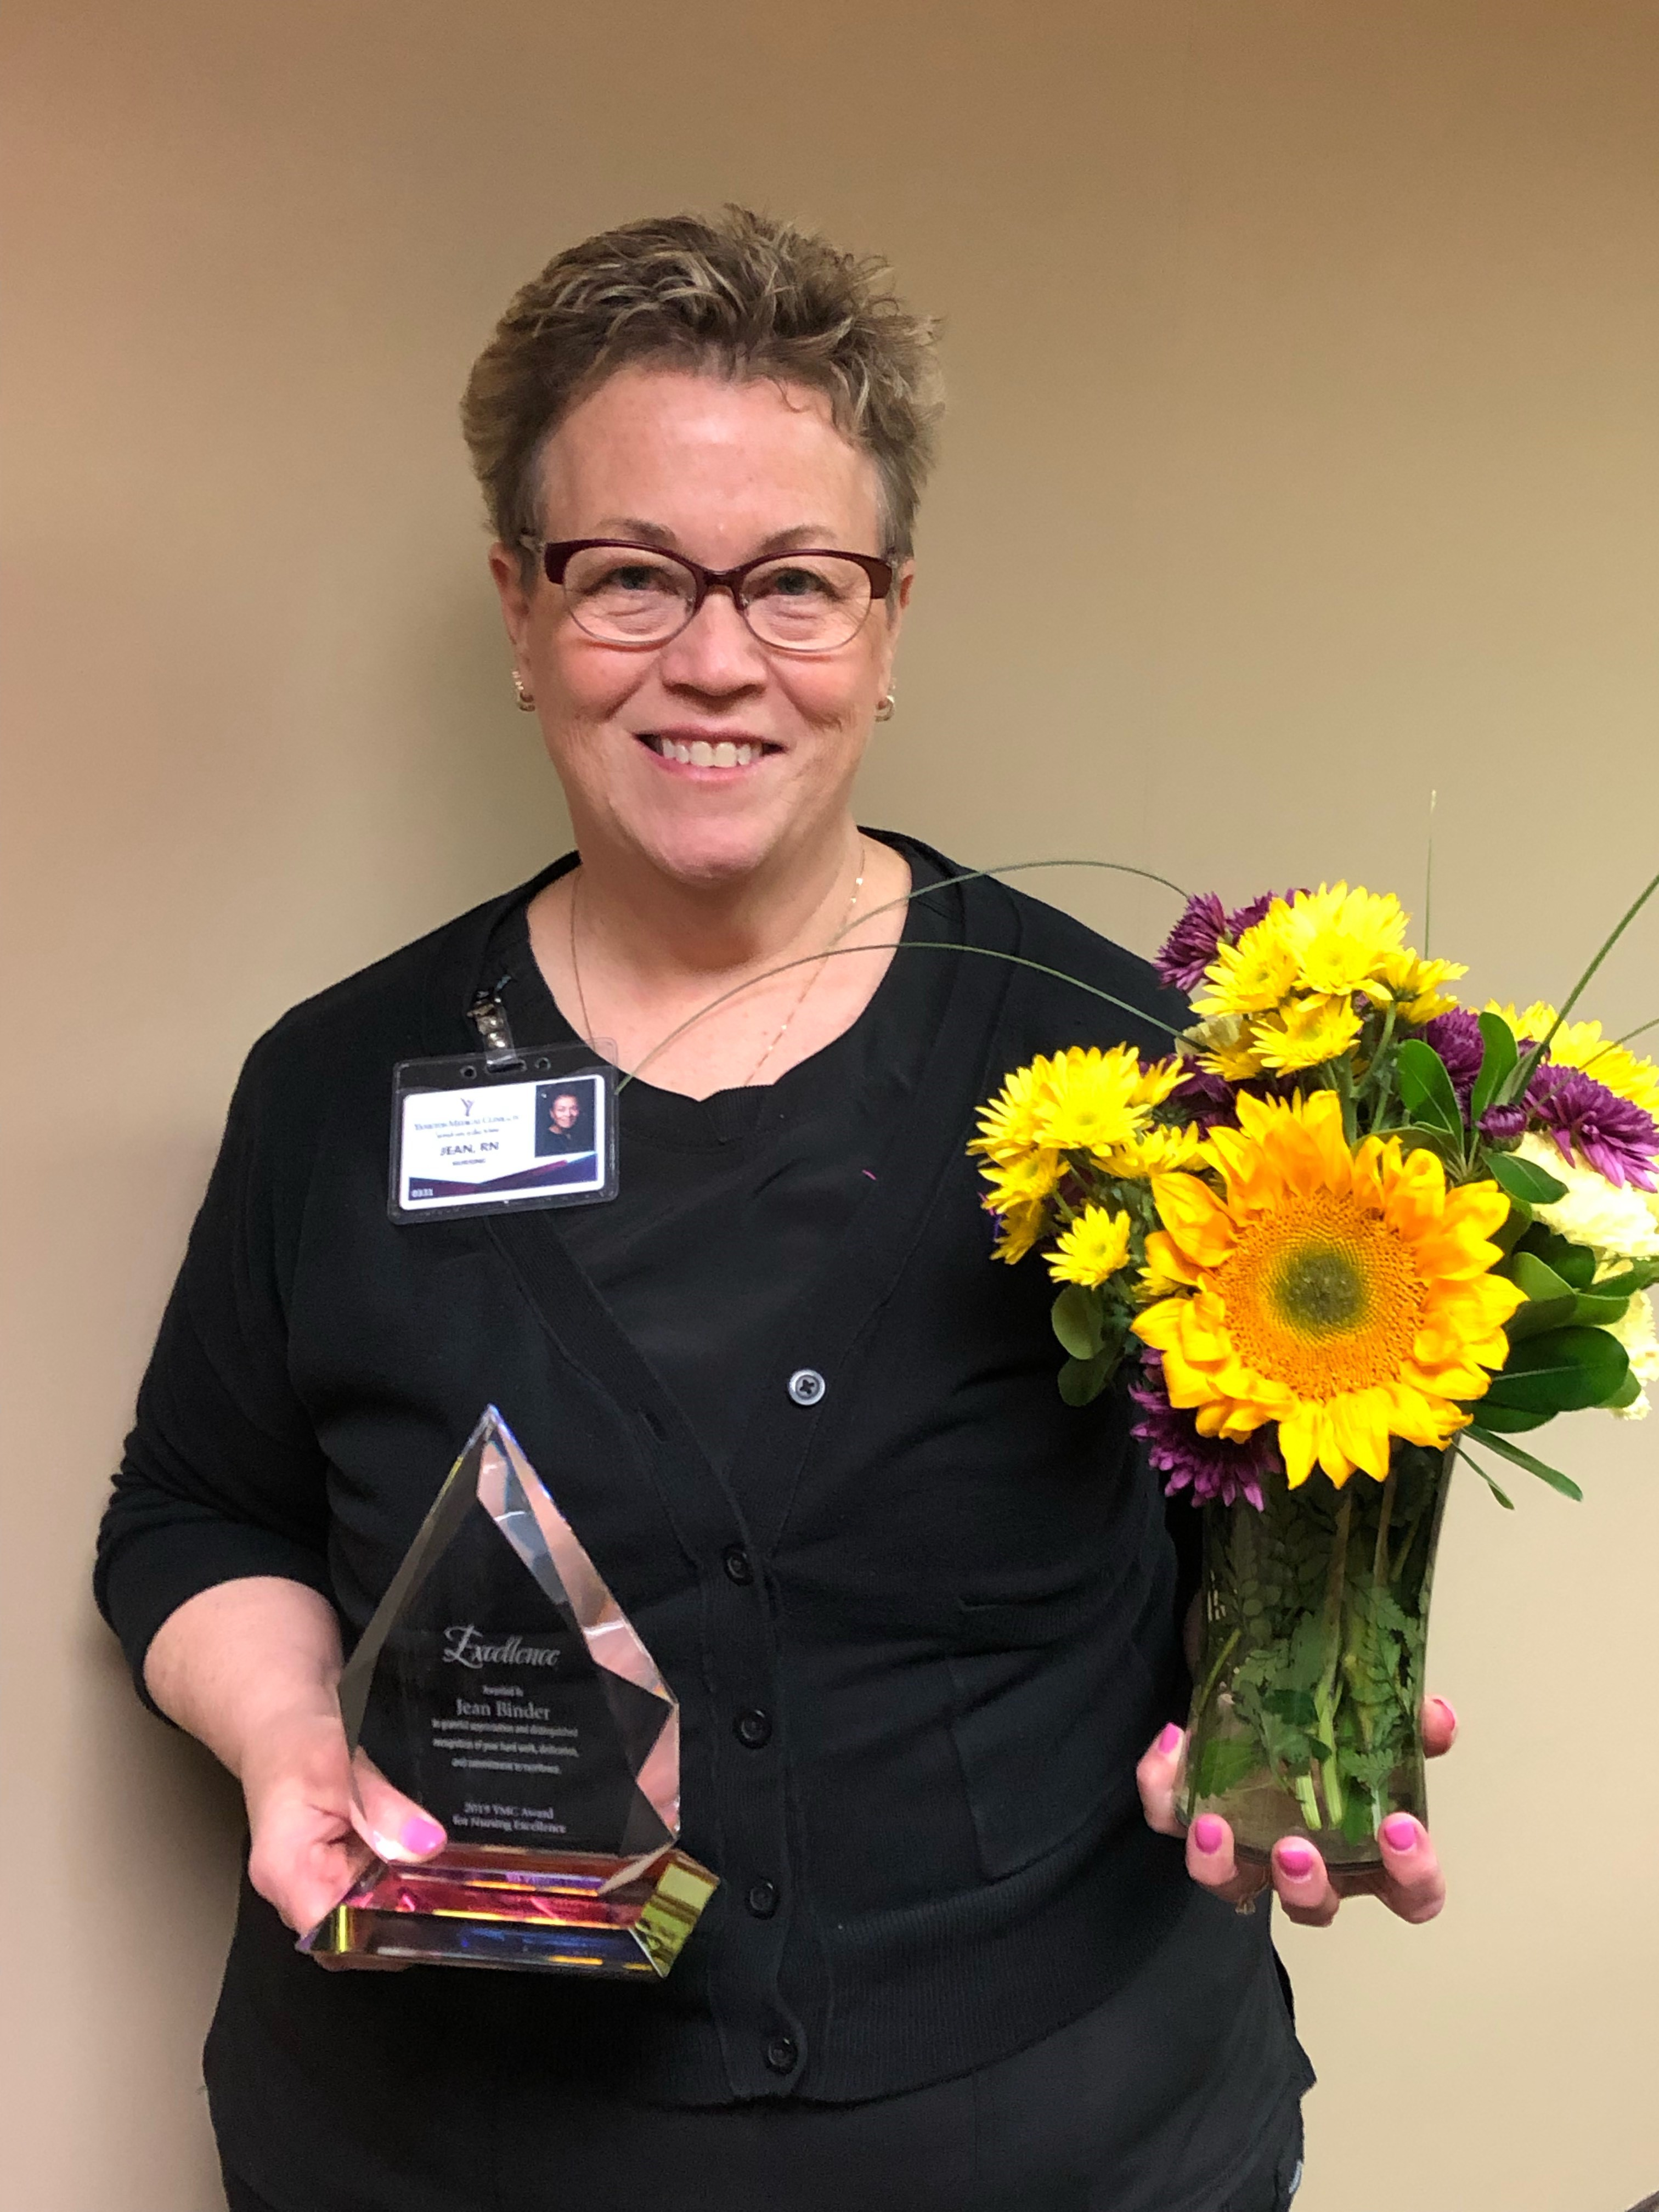 Jean Binder, RN, holds the excellence in nursing award and bouquet of flowers